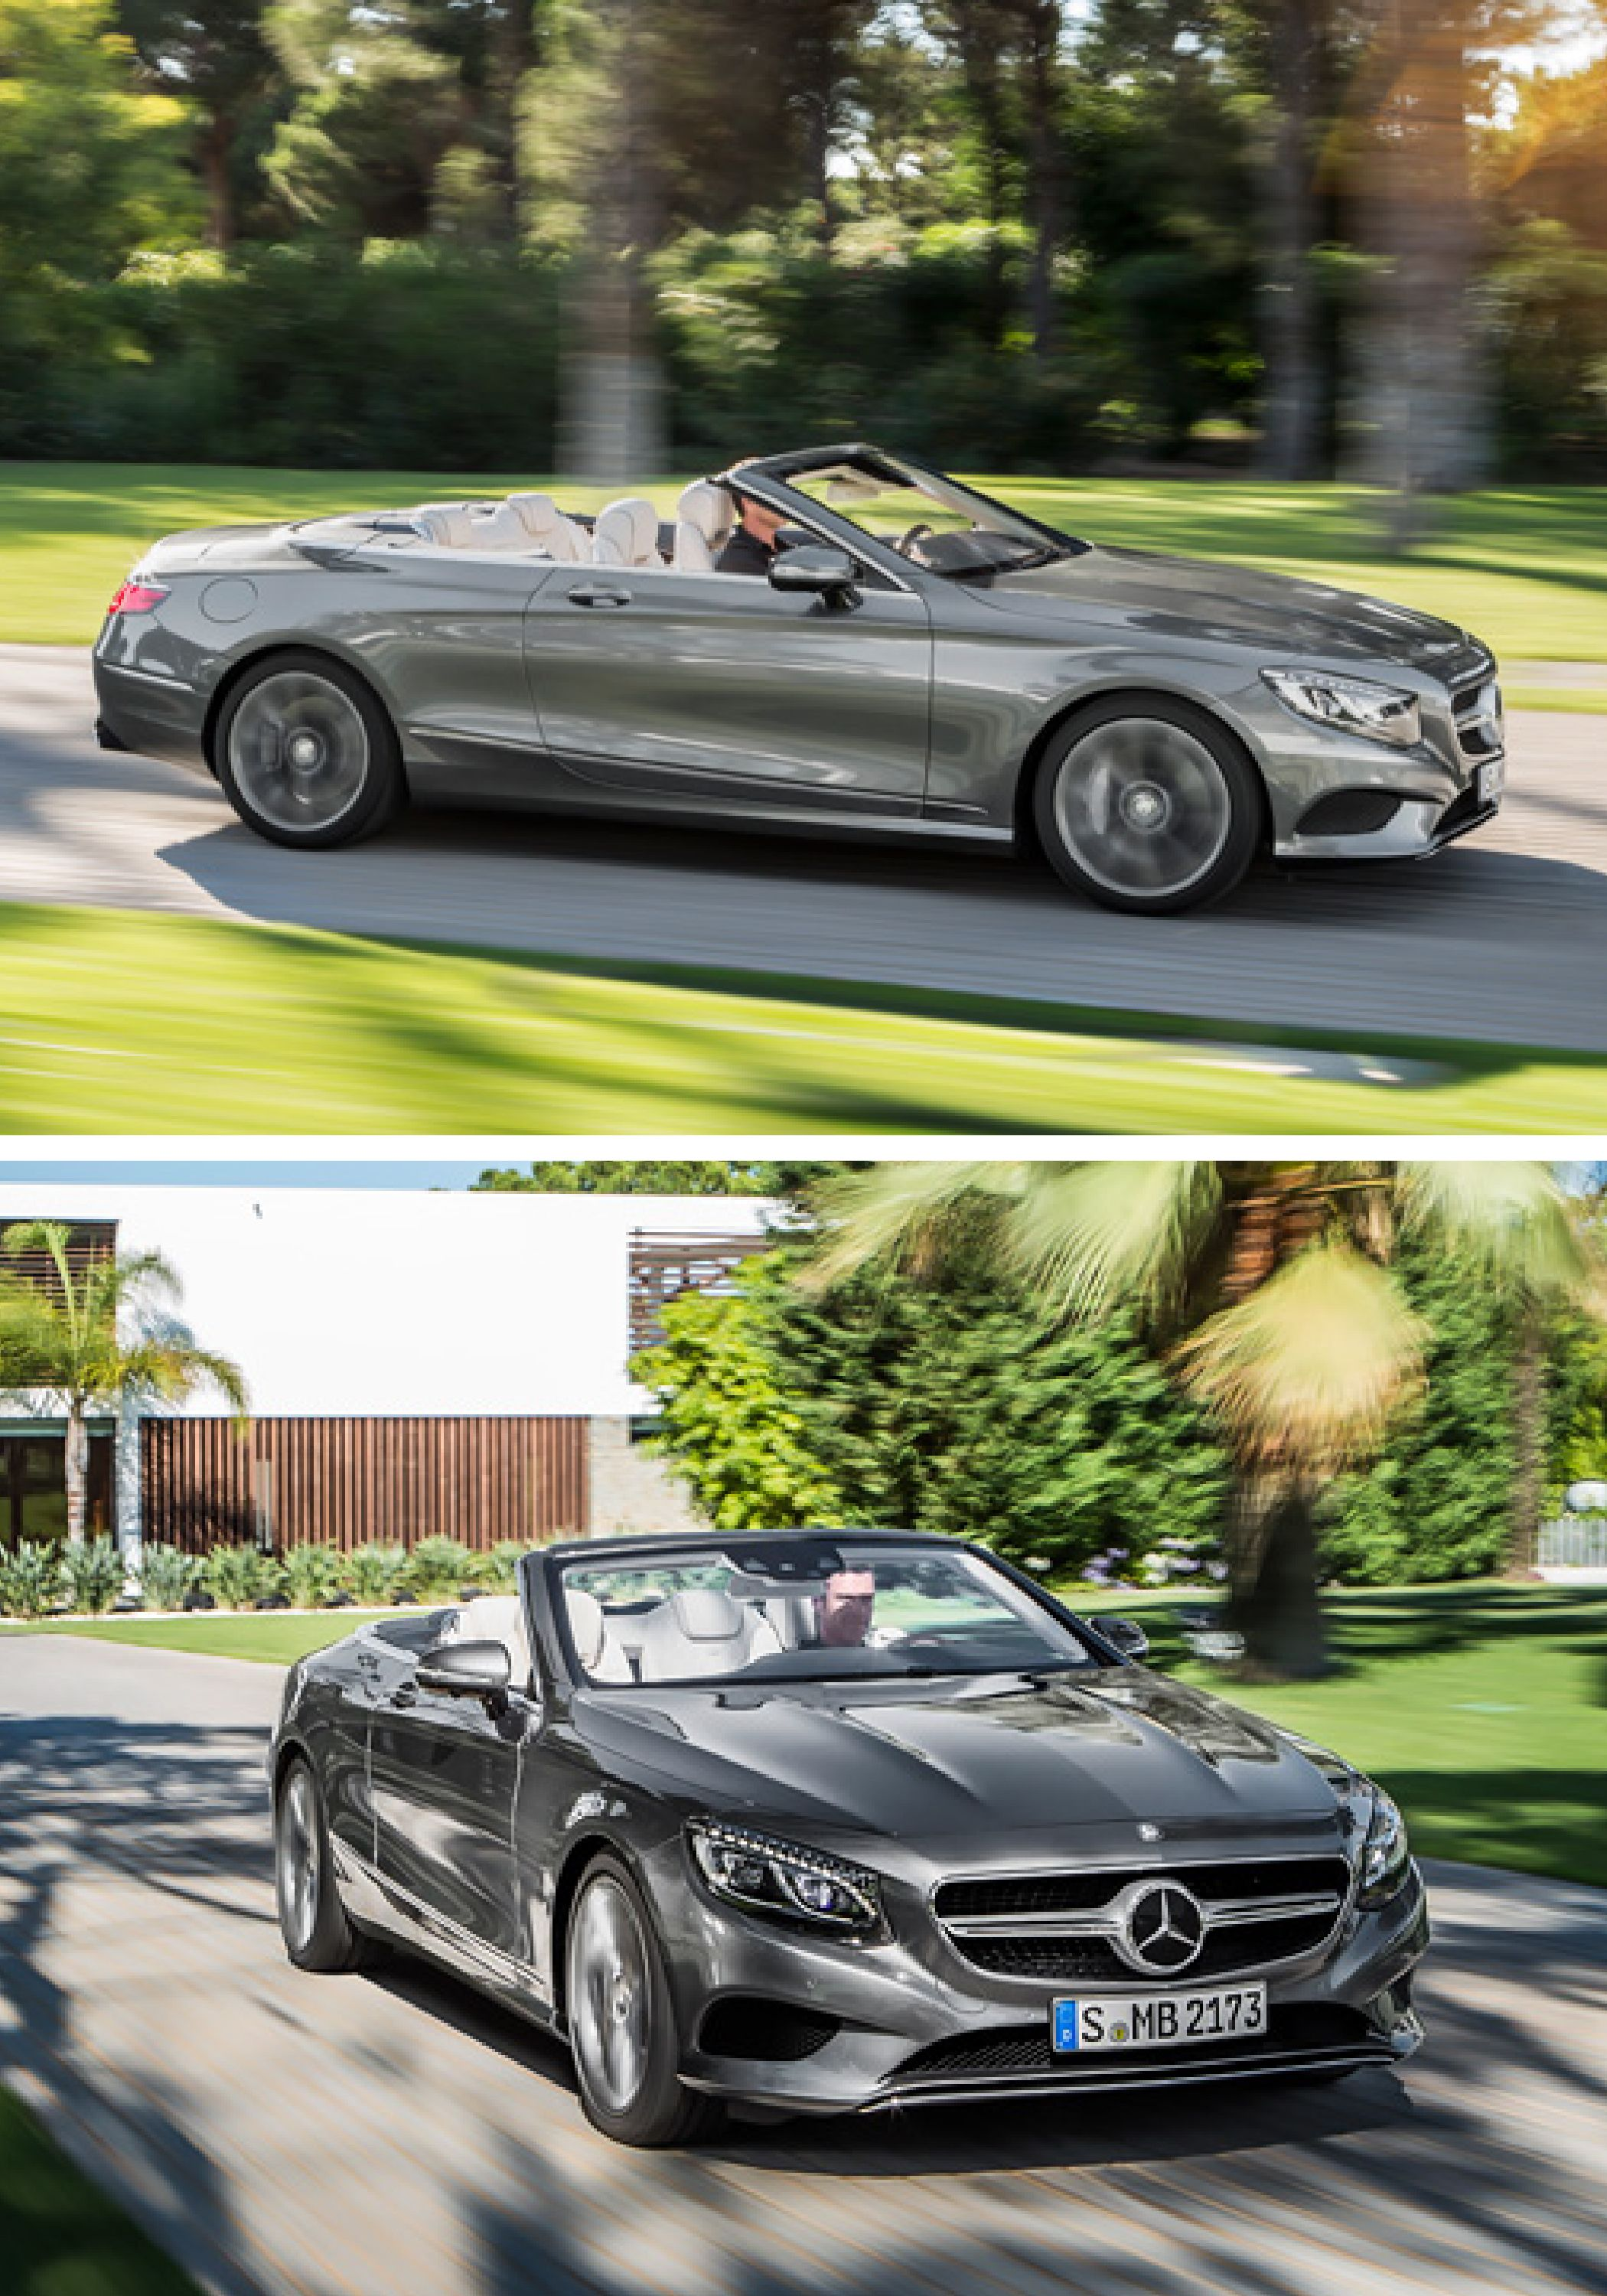 small resolution of check out the sixth variant of the current s class family and the first open top luxury four seater from mercedes benz